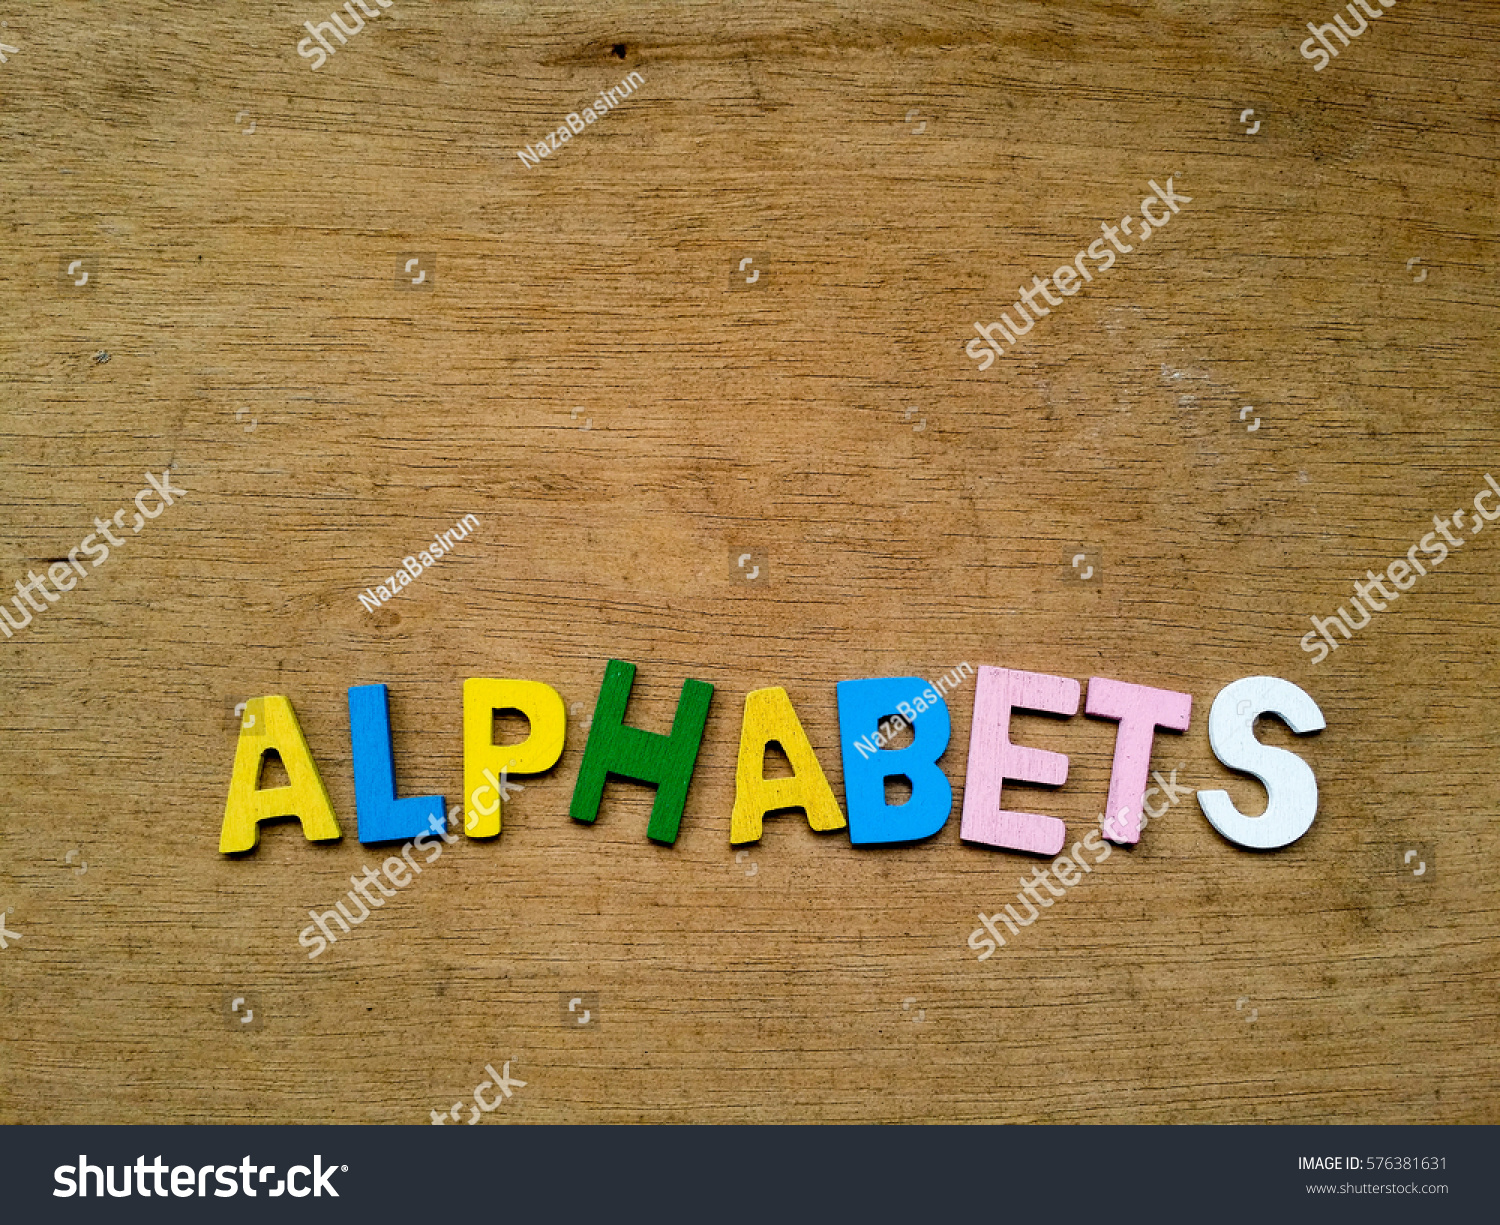 Colorful Wood Alphabets On Timber Flooring Stock Photo 576381631 ...